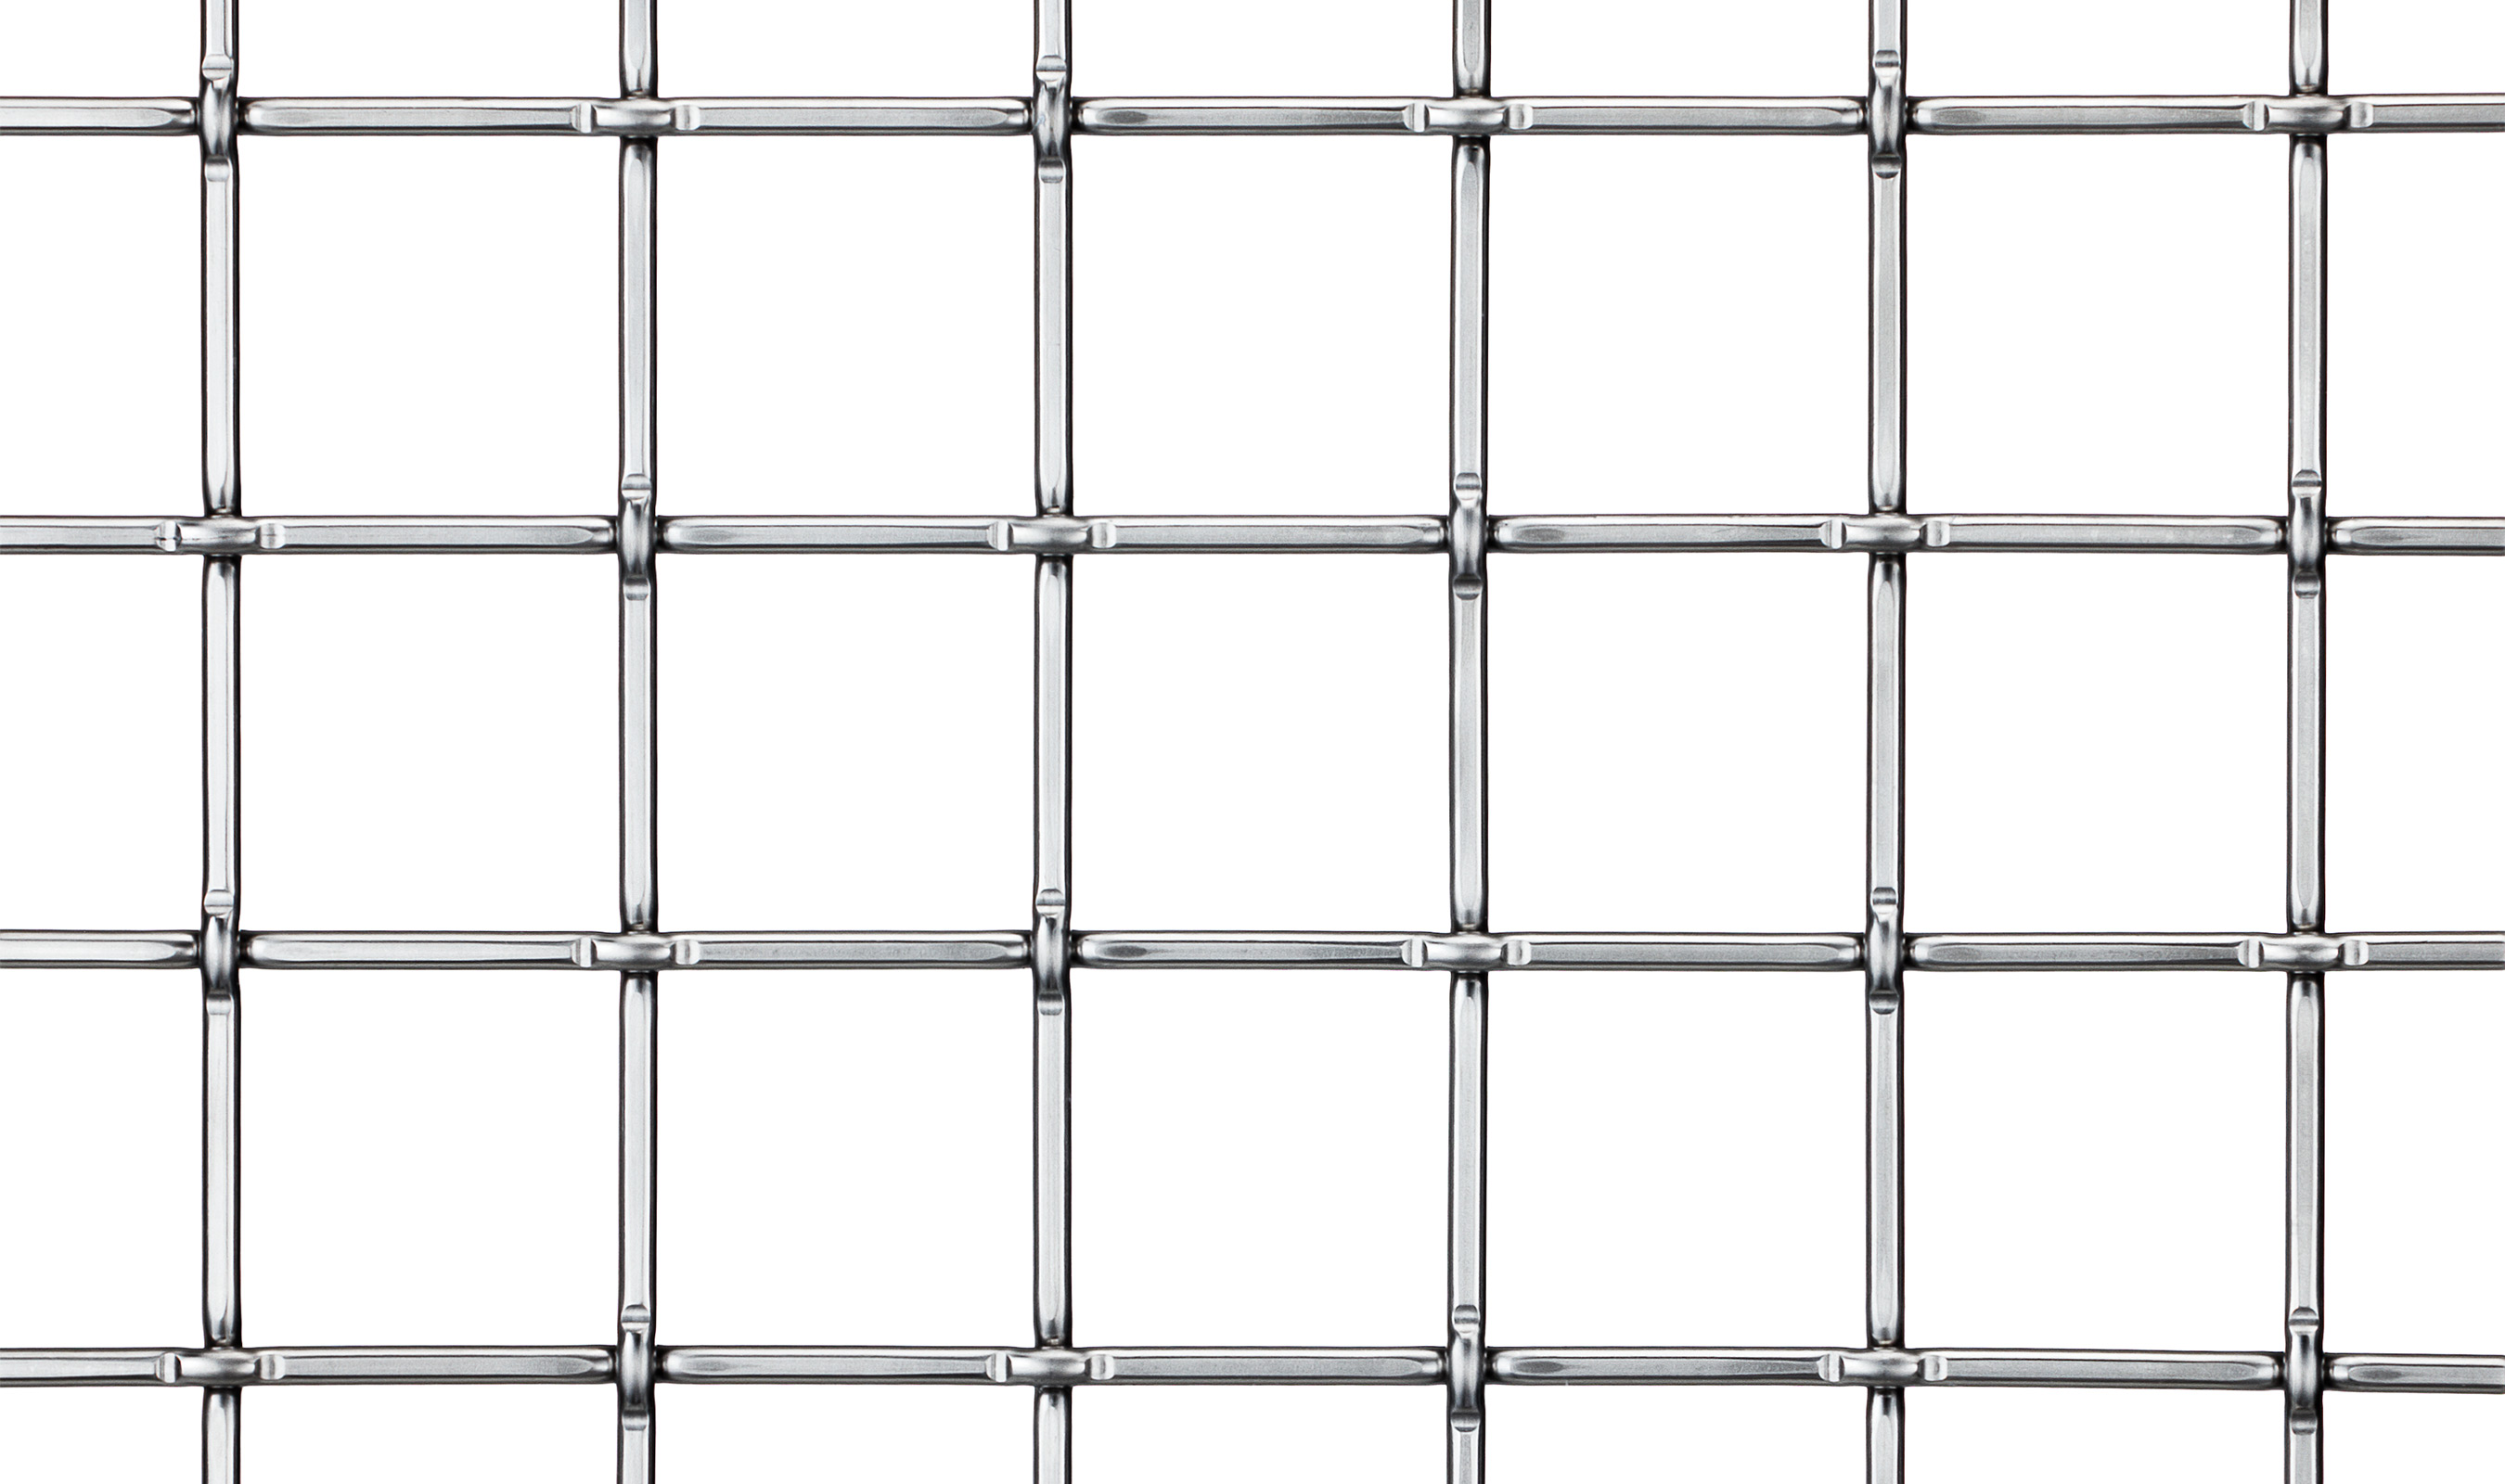 L-62 architectural wire mesh pattern in stainless steel